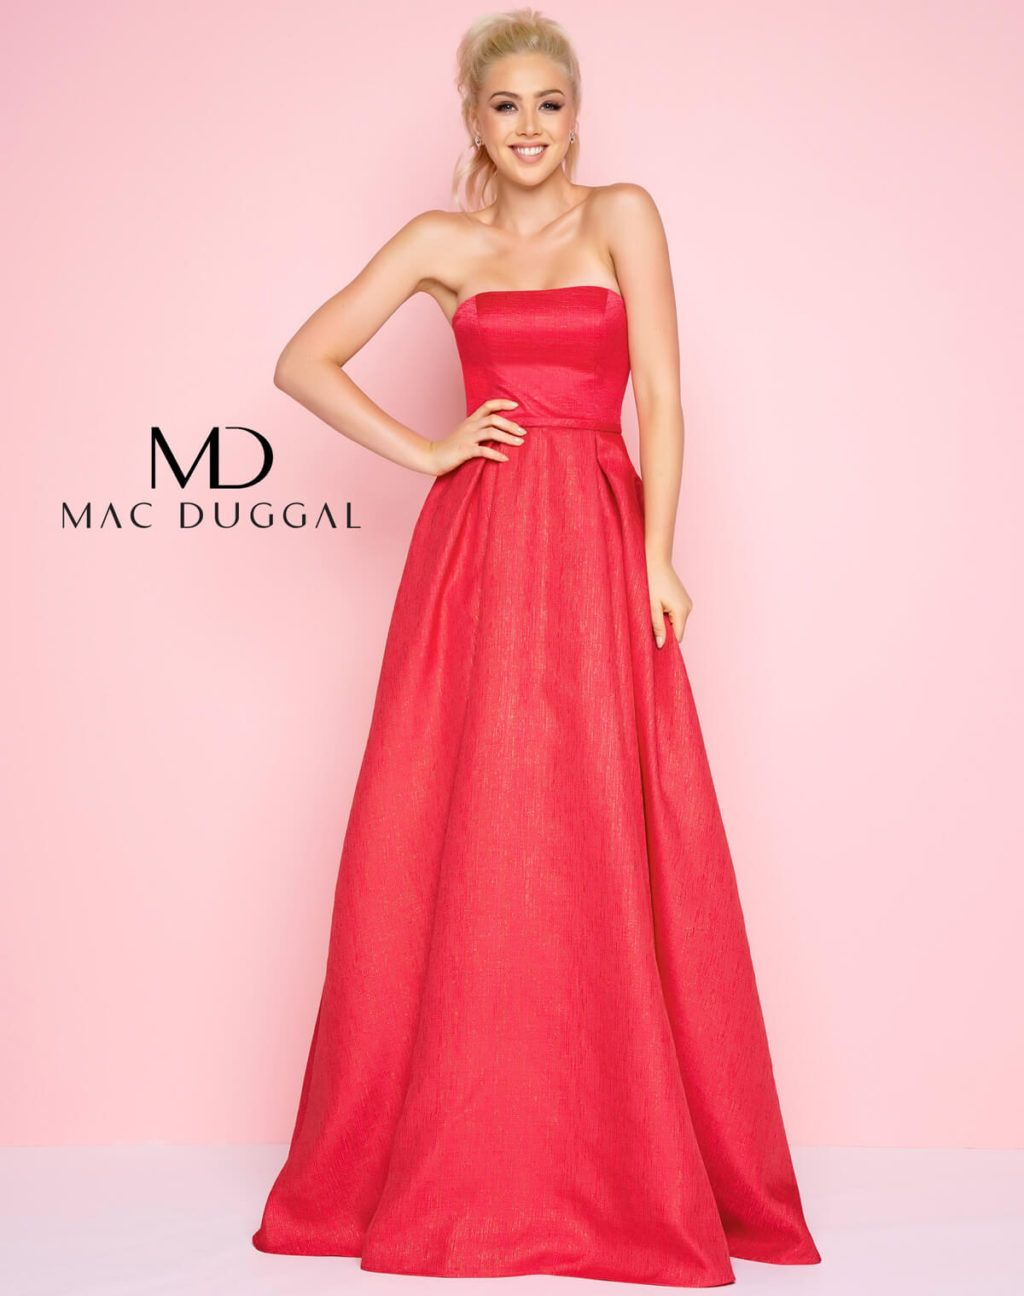 Strapless Straight Neckline Prom Gown Back Ball Gowns Strapless Dress Formal Prom Dresses [ 1296 x 1024 Pixel ]